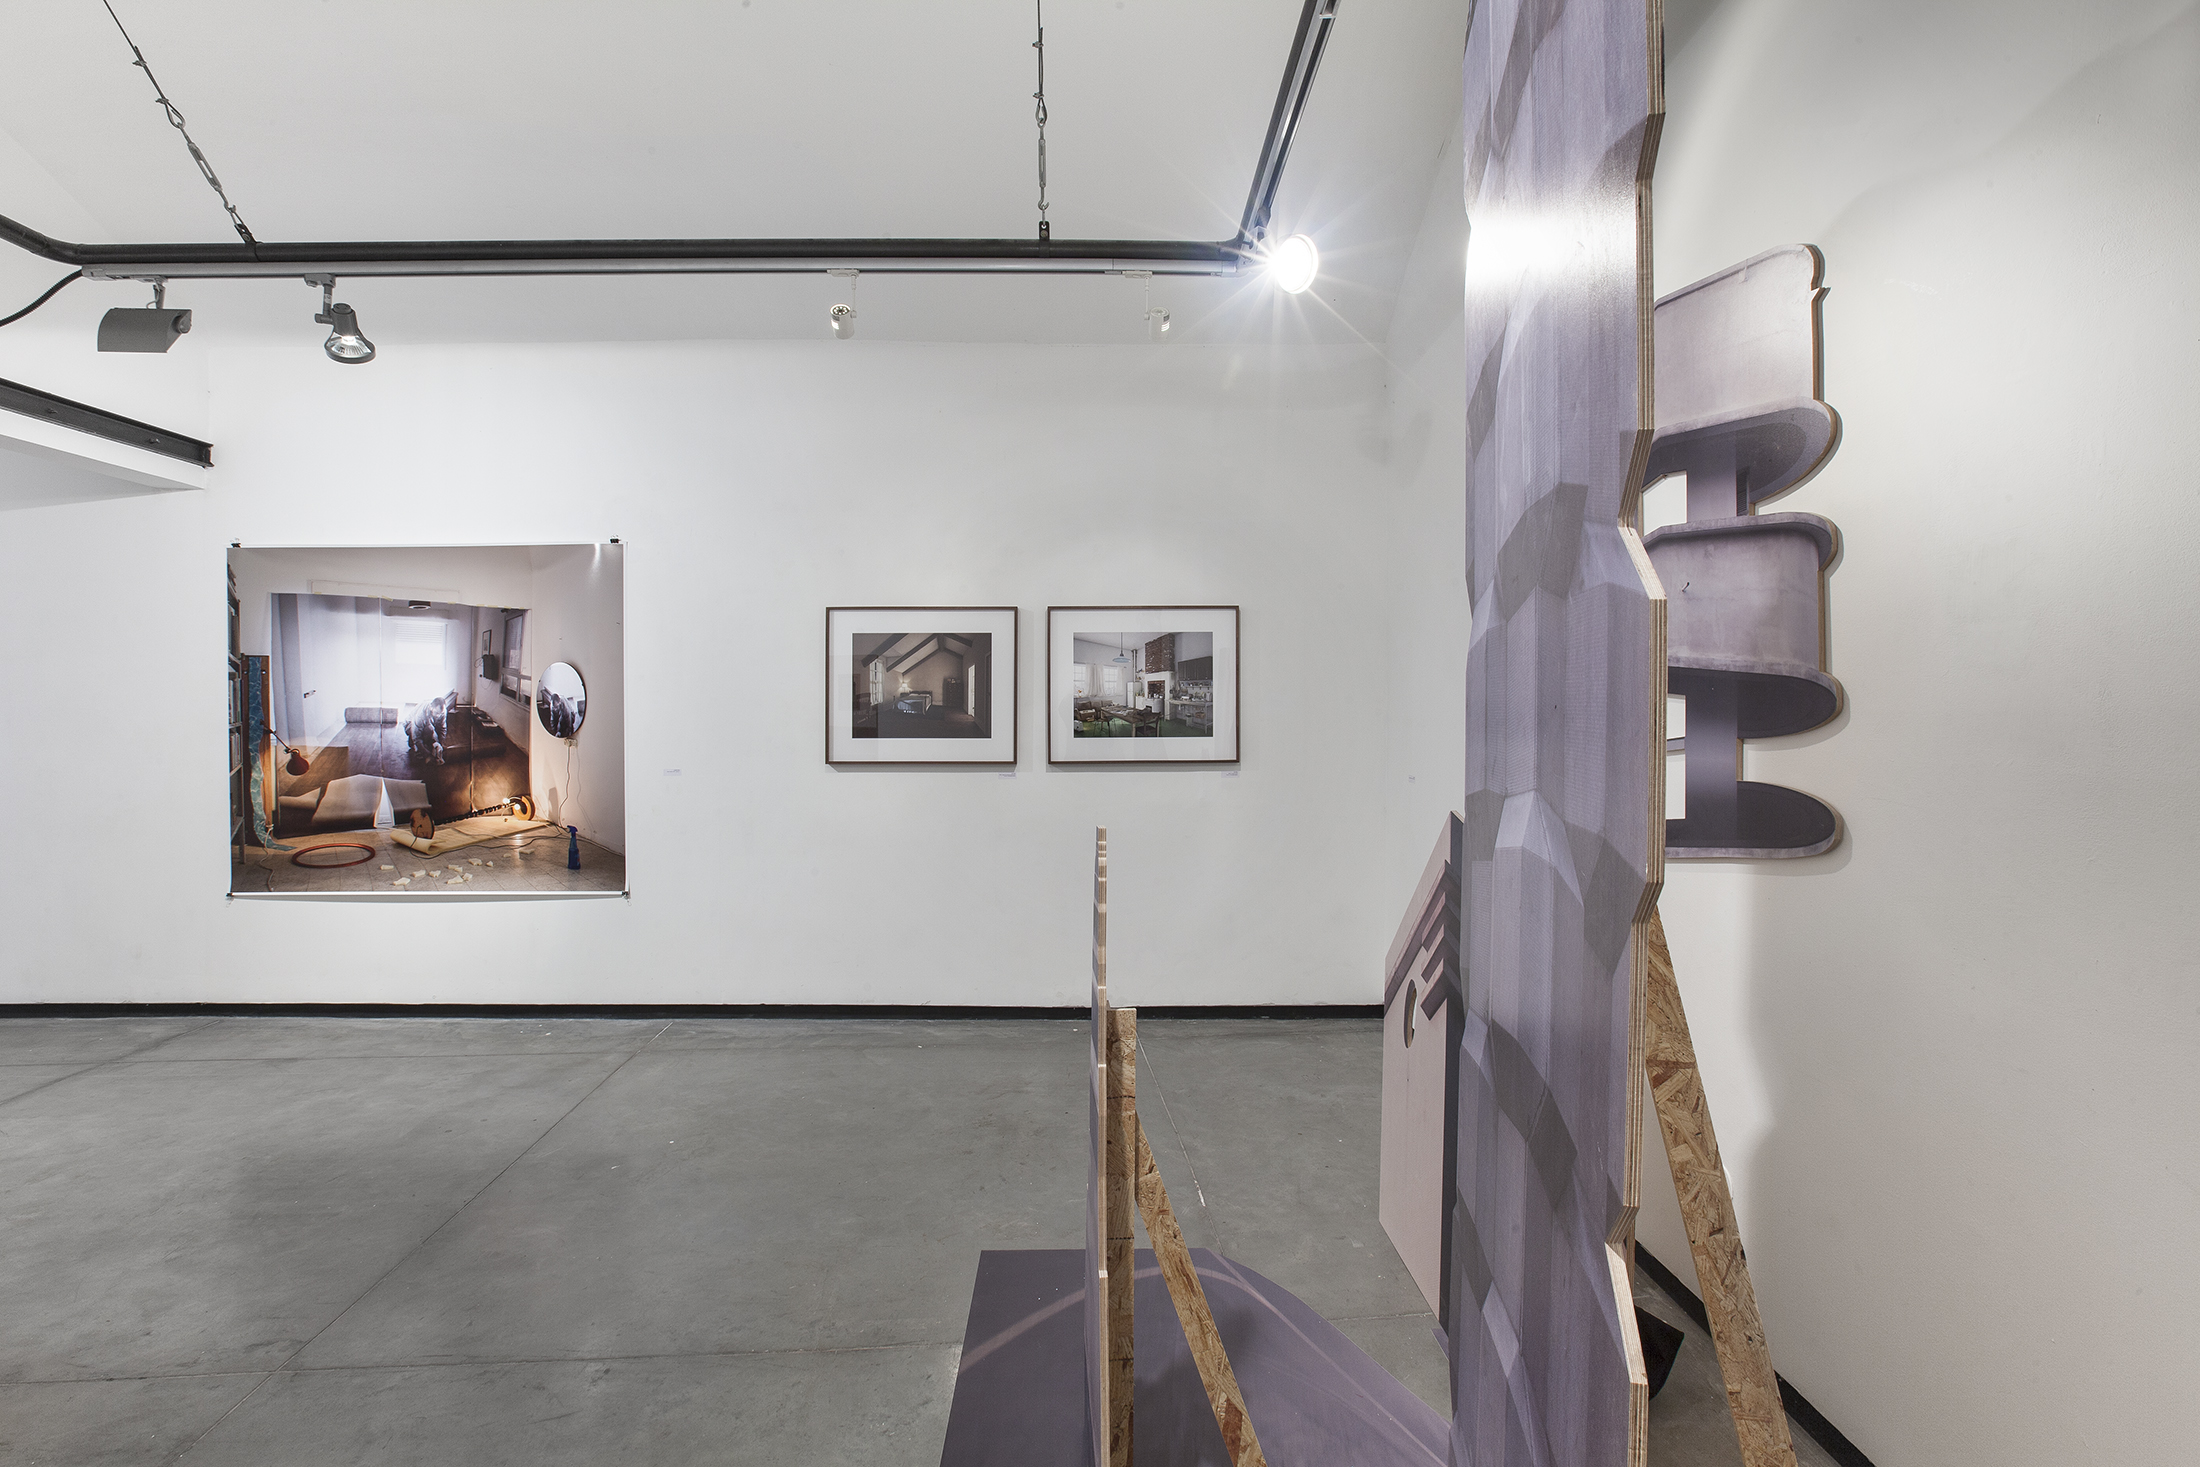 Installation shots by Liat Elbling